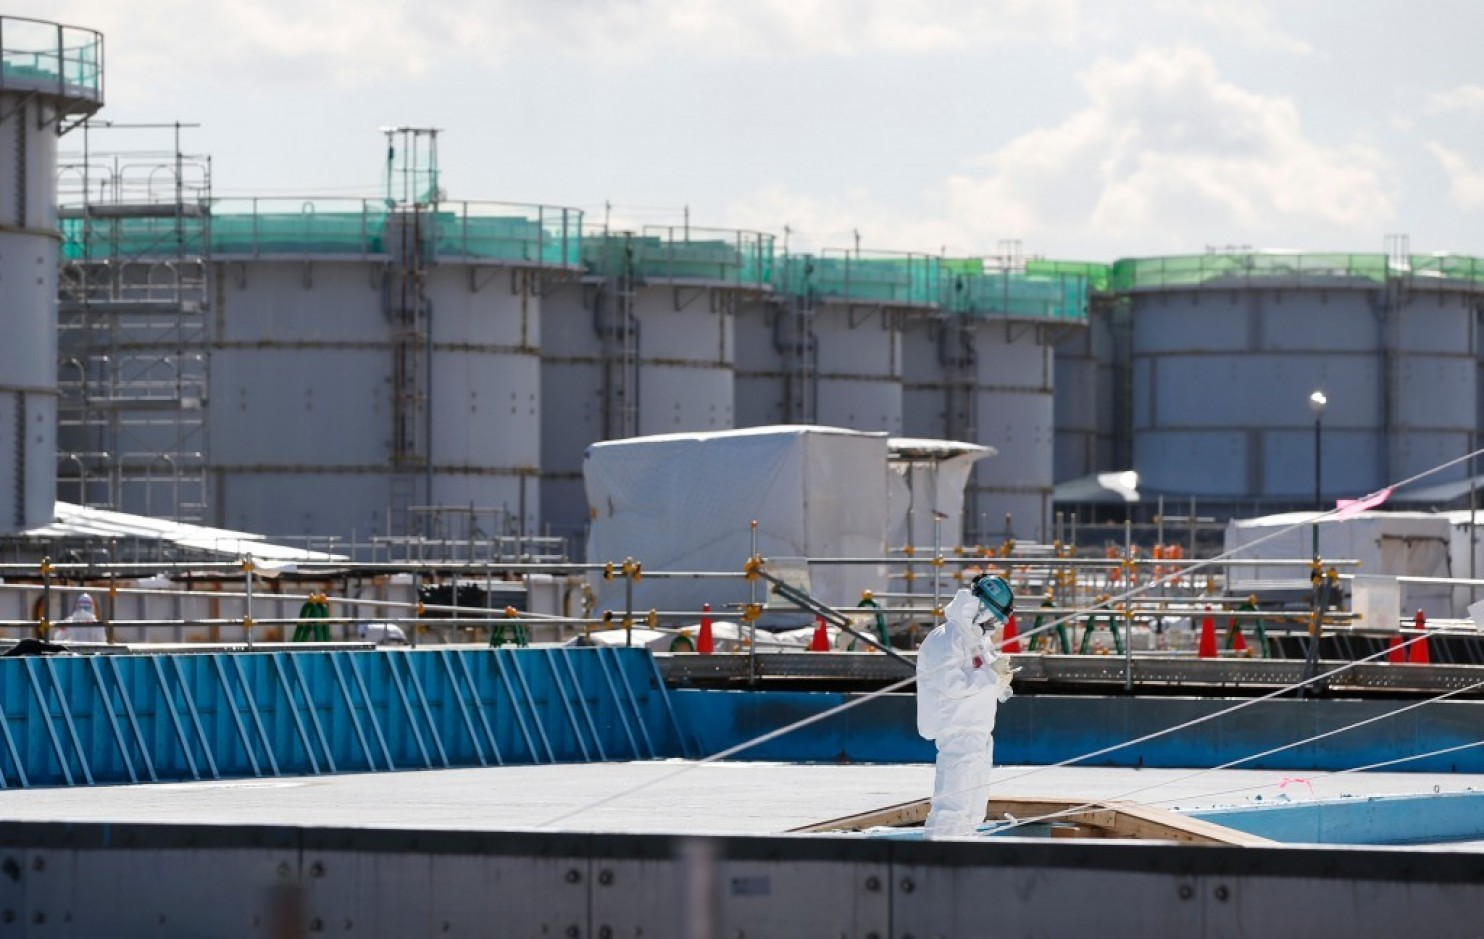 Japanese nuclear plant just recorded an astronomical radiation level. Should we be worried?